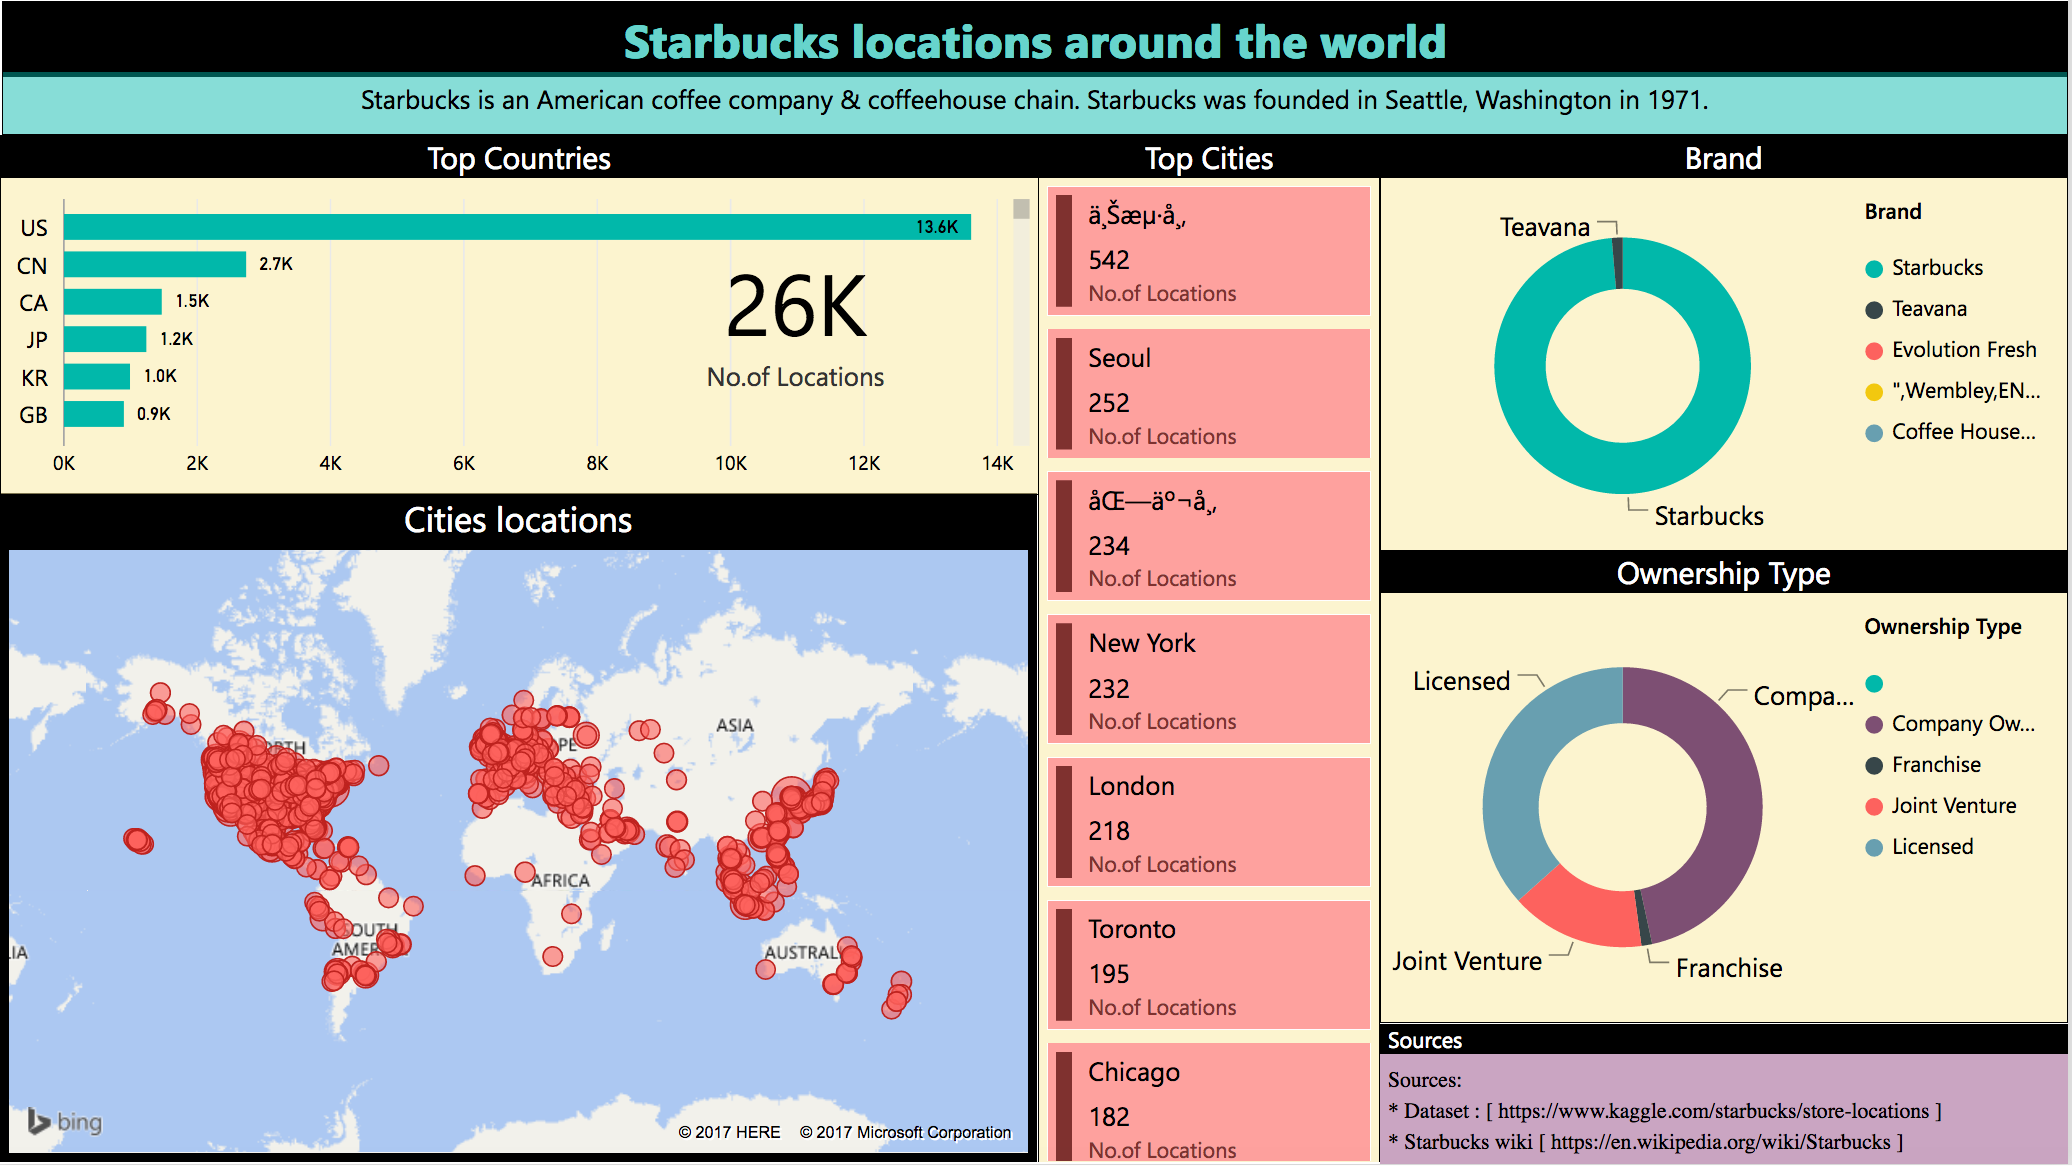 Starbucks locations around the world